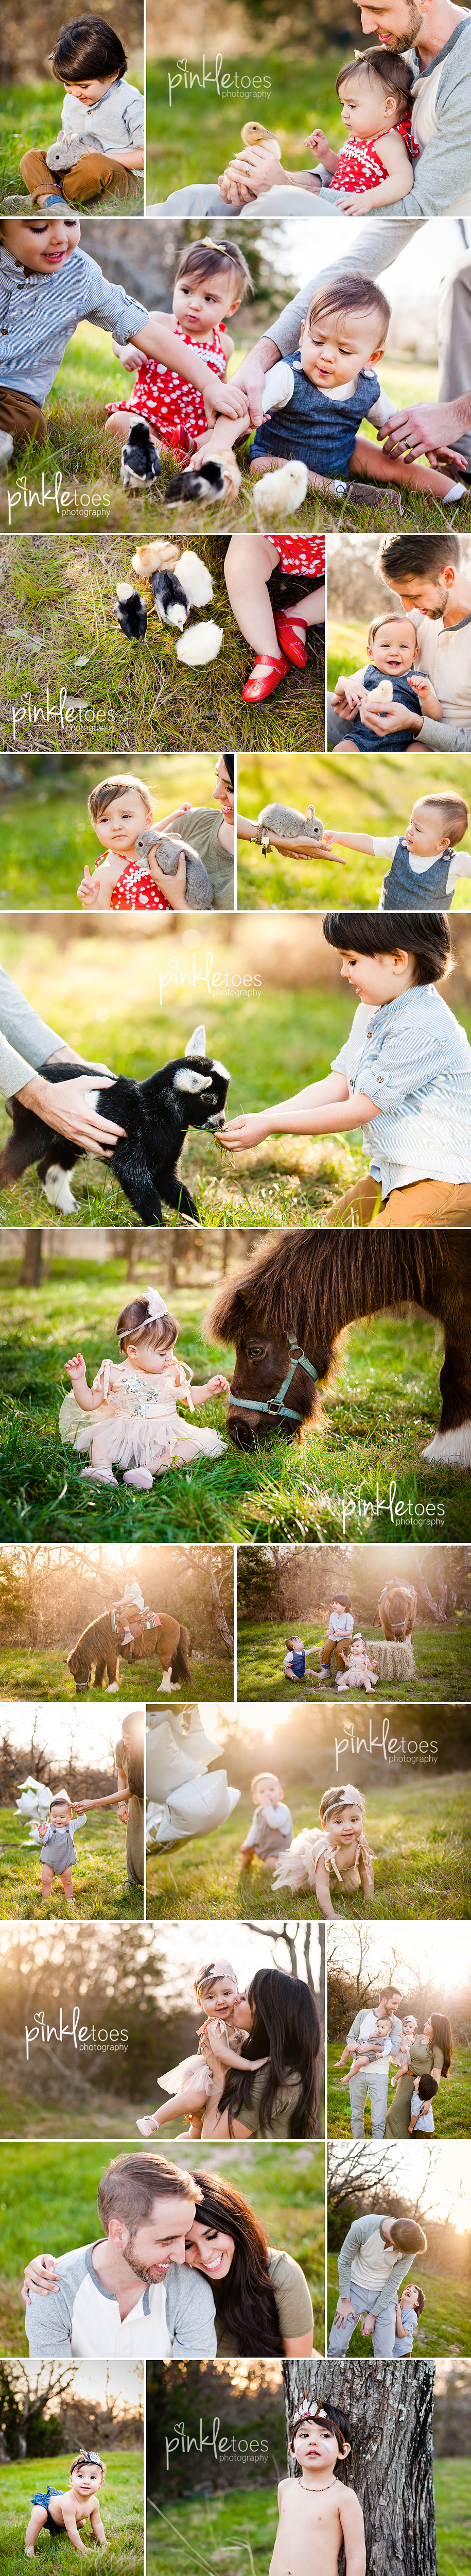 th-pinkle-toes-twins-multiples-austin-photographer-farm-animals-horse-duck-baby-chicks